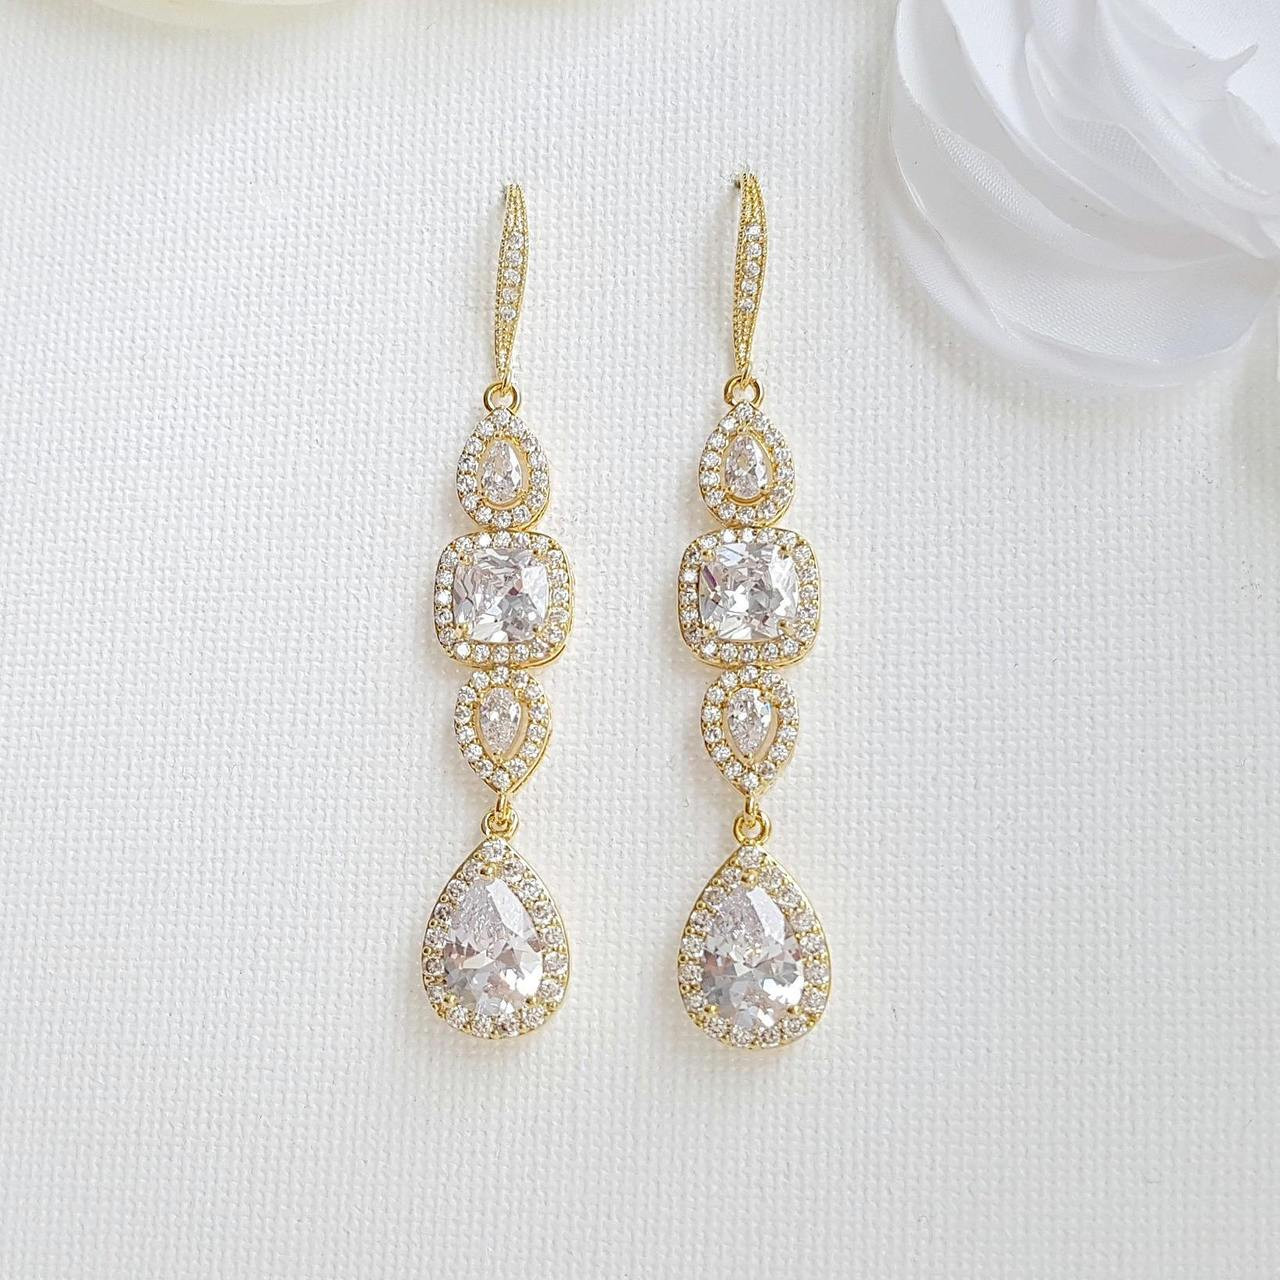 4563485ff Long Gold Drop & Dangle Earrings for Sparkly Bridal & Wedding Day Look